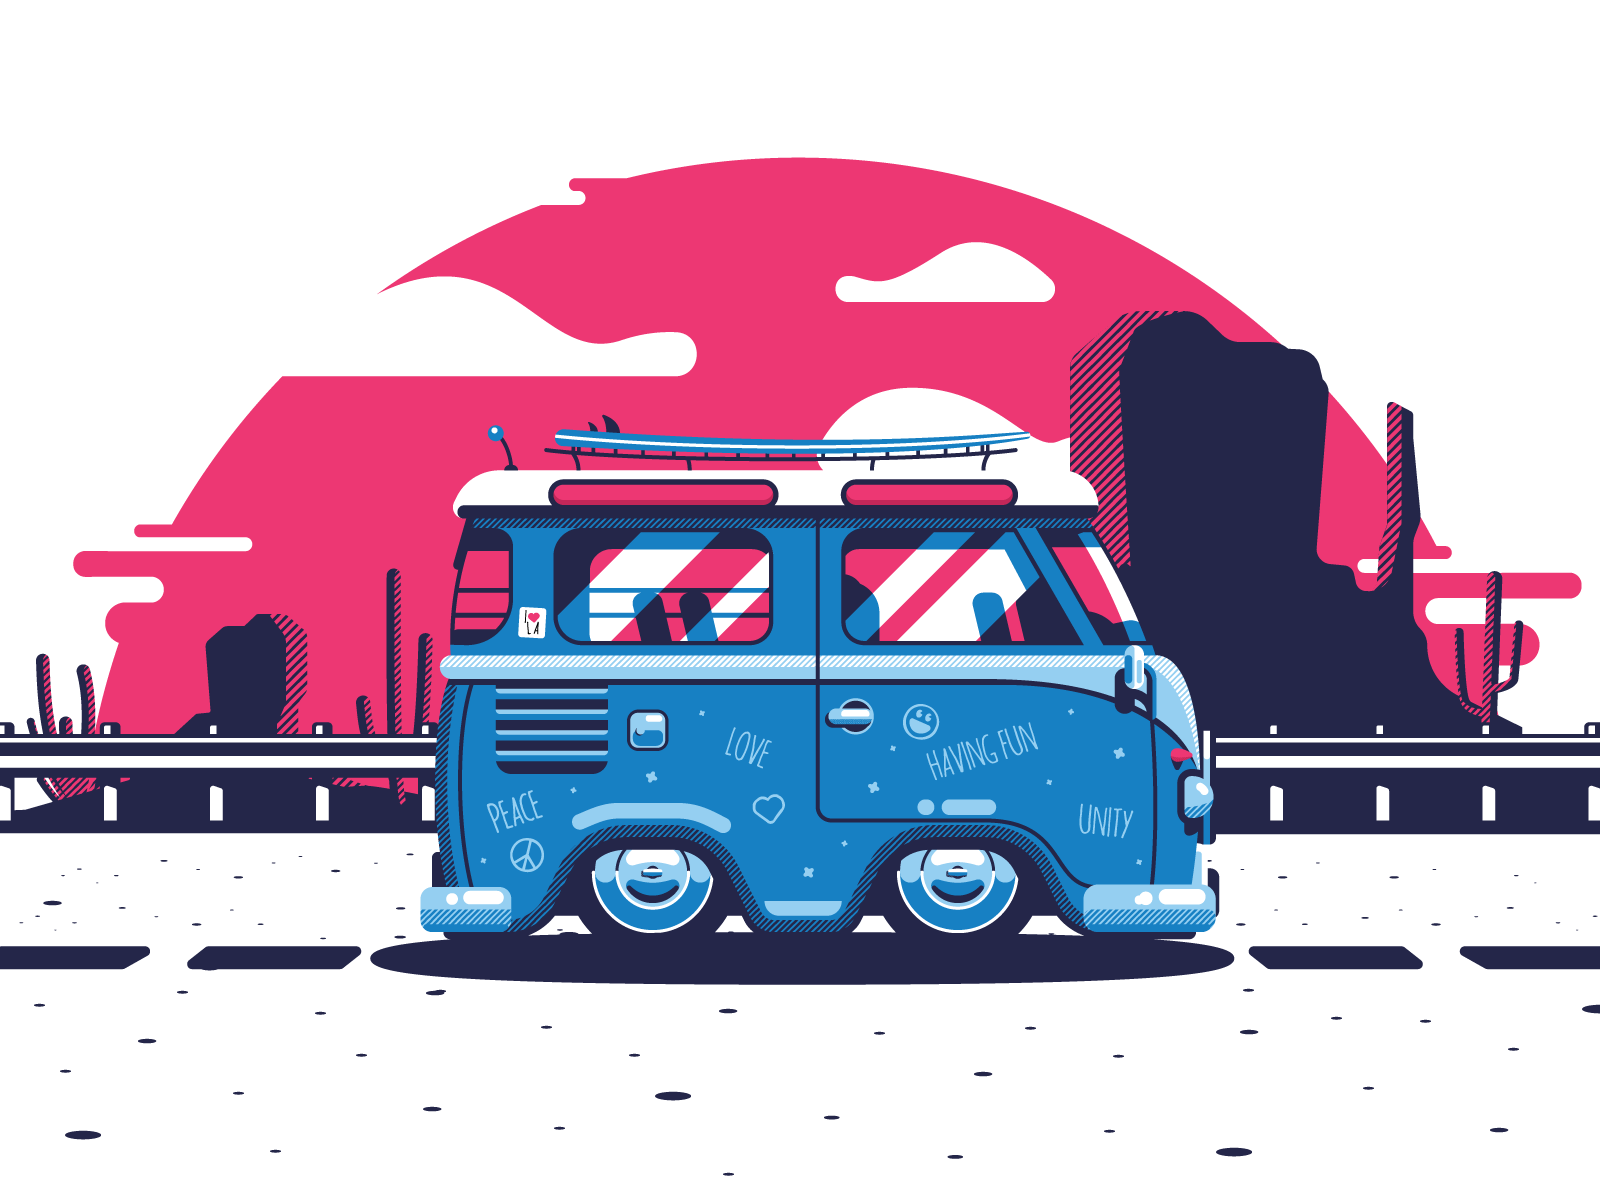 Full size bus illustration